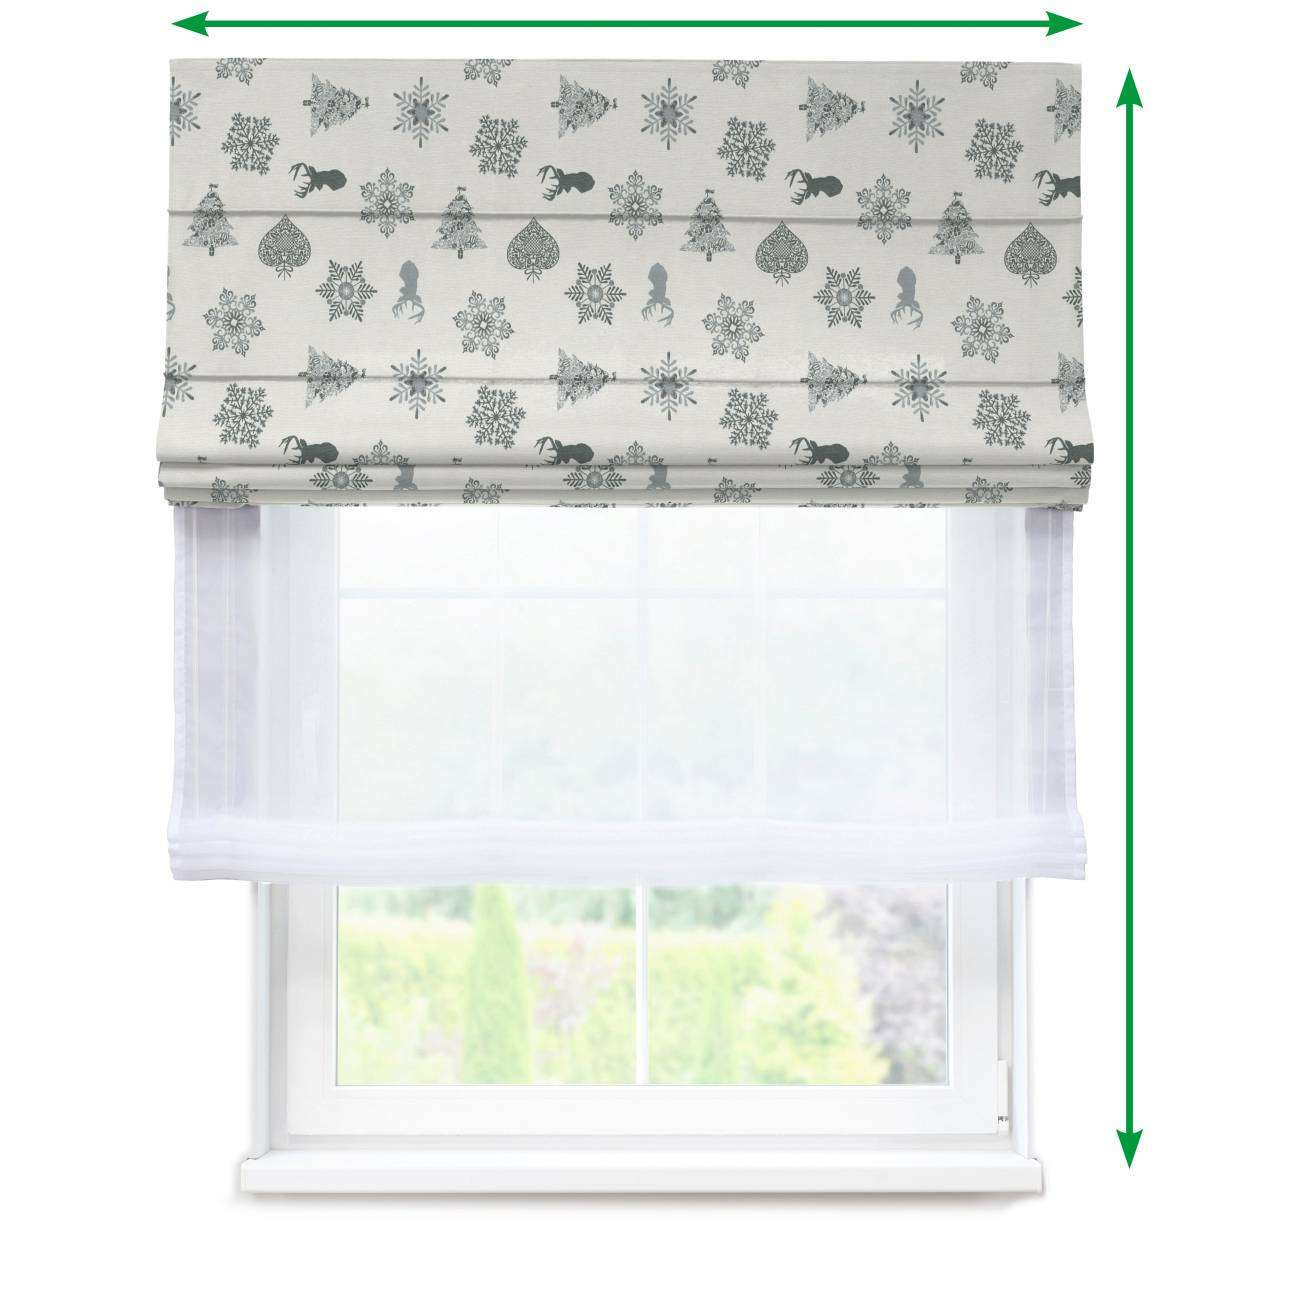 Voile and fabric roman blind (DUO II) in collection Christmas, fabric: 630-24